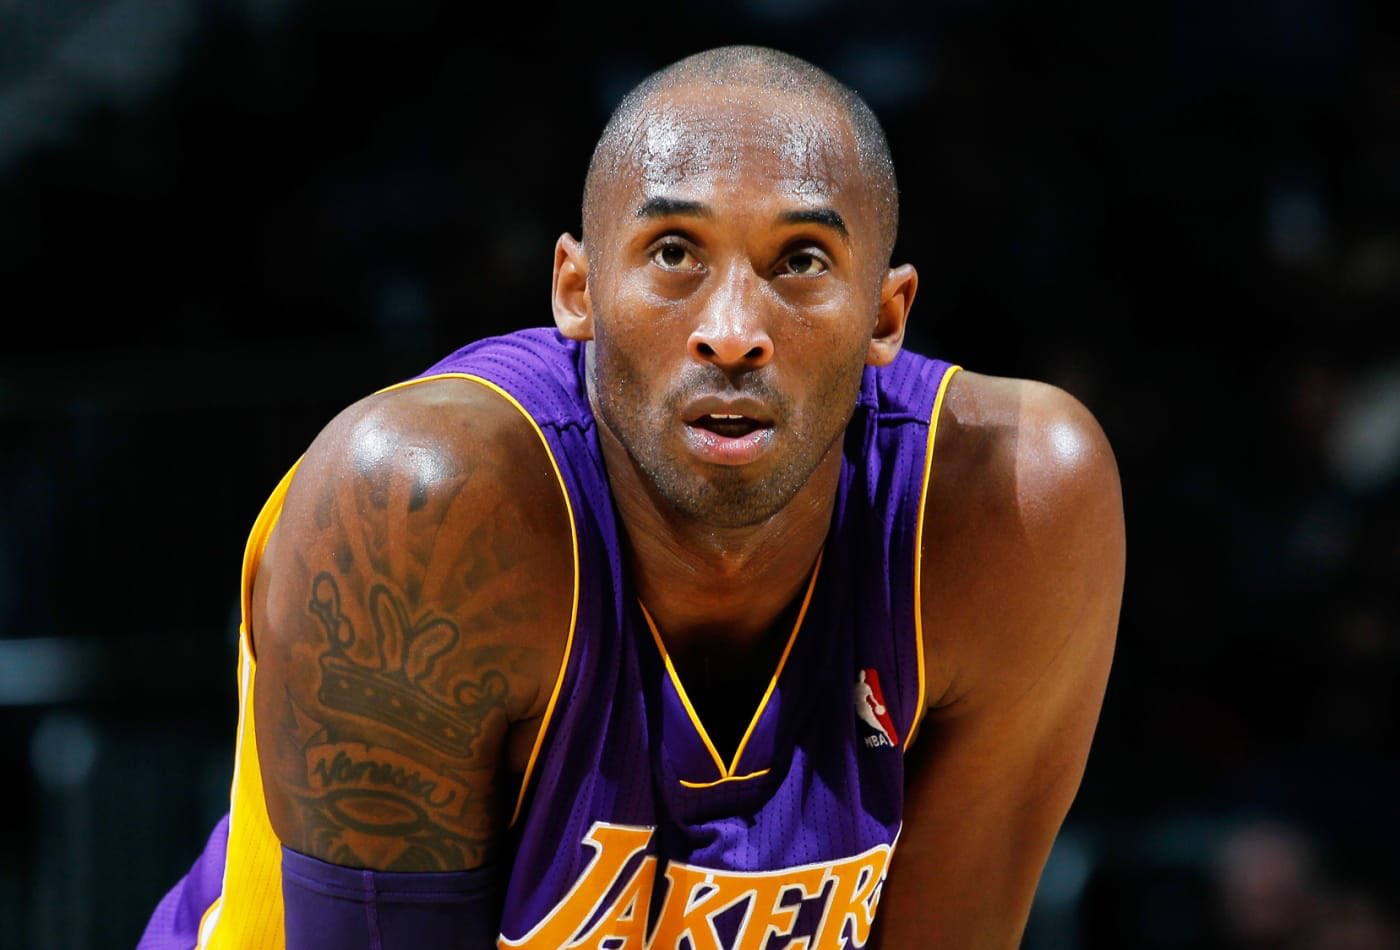 Tragedy : Kobe Bryant Dies In a helicopter crash (video)